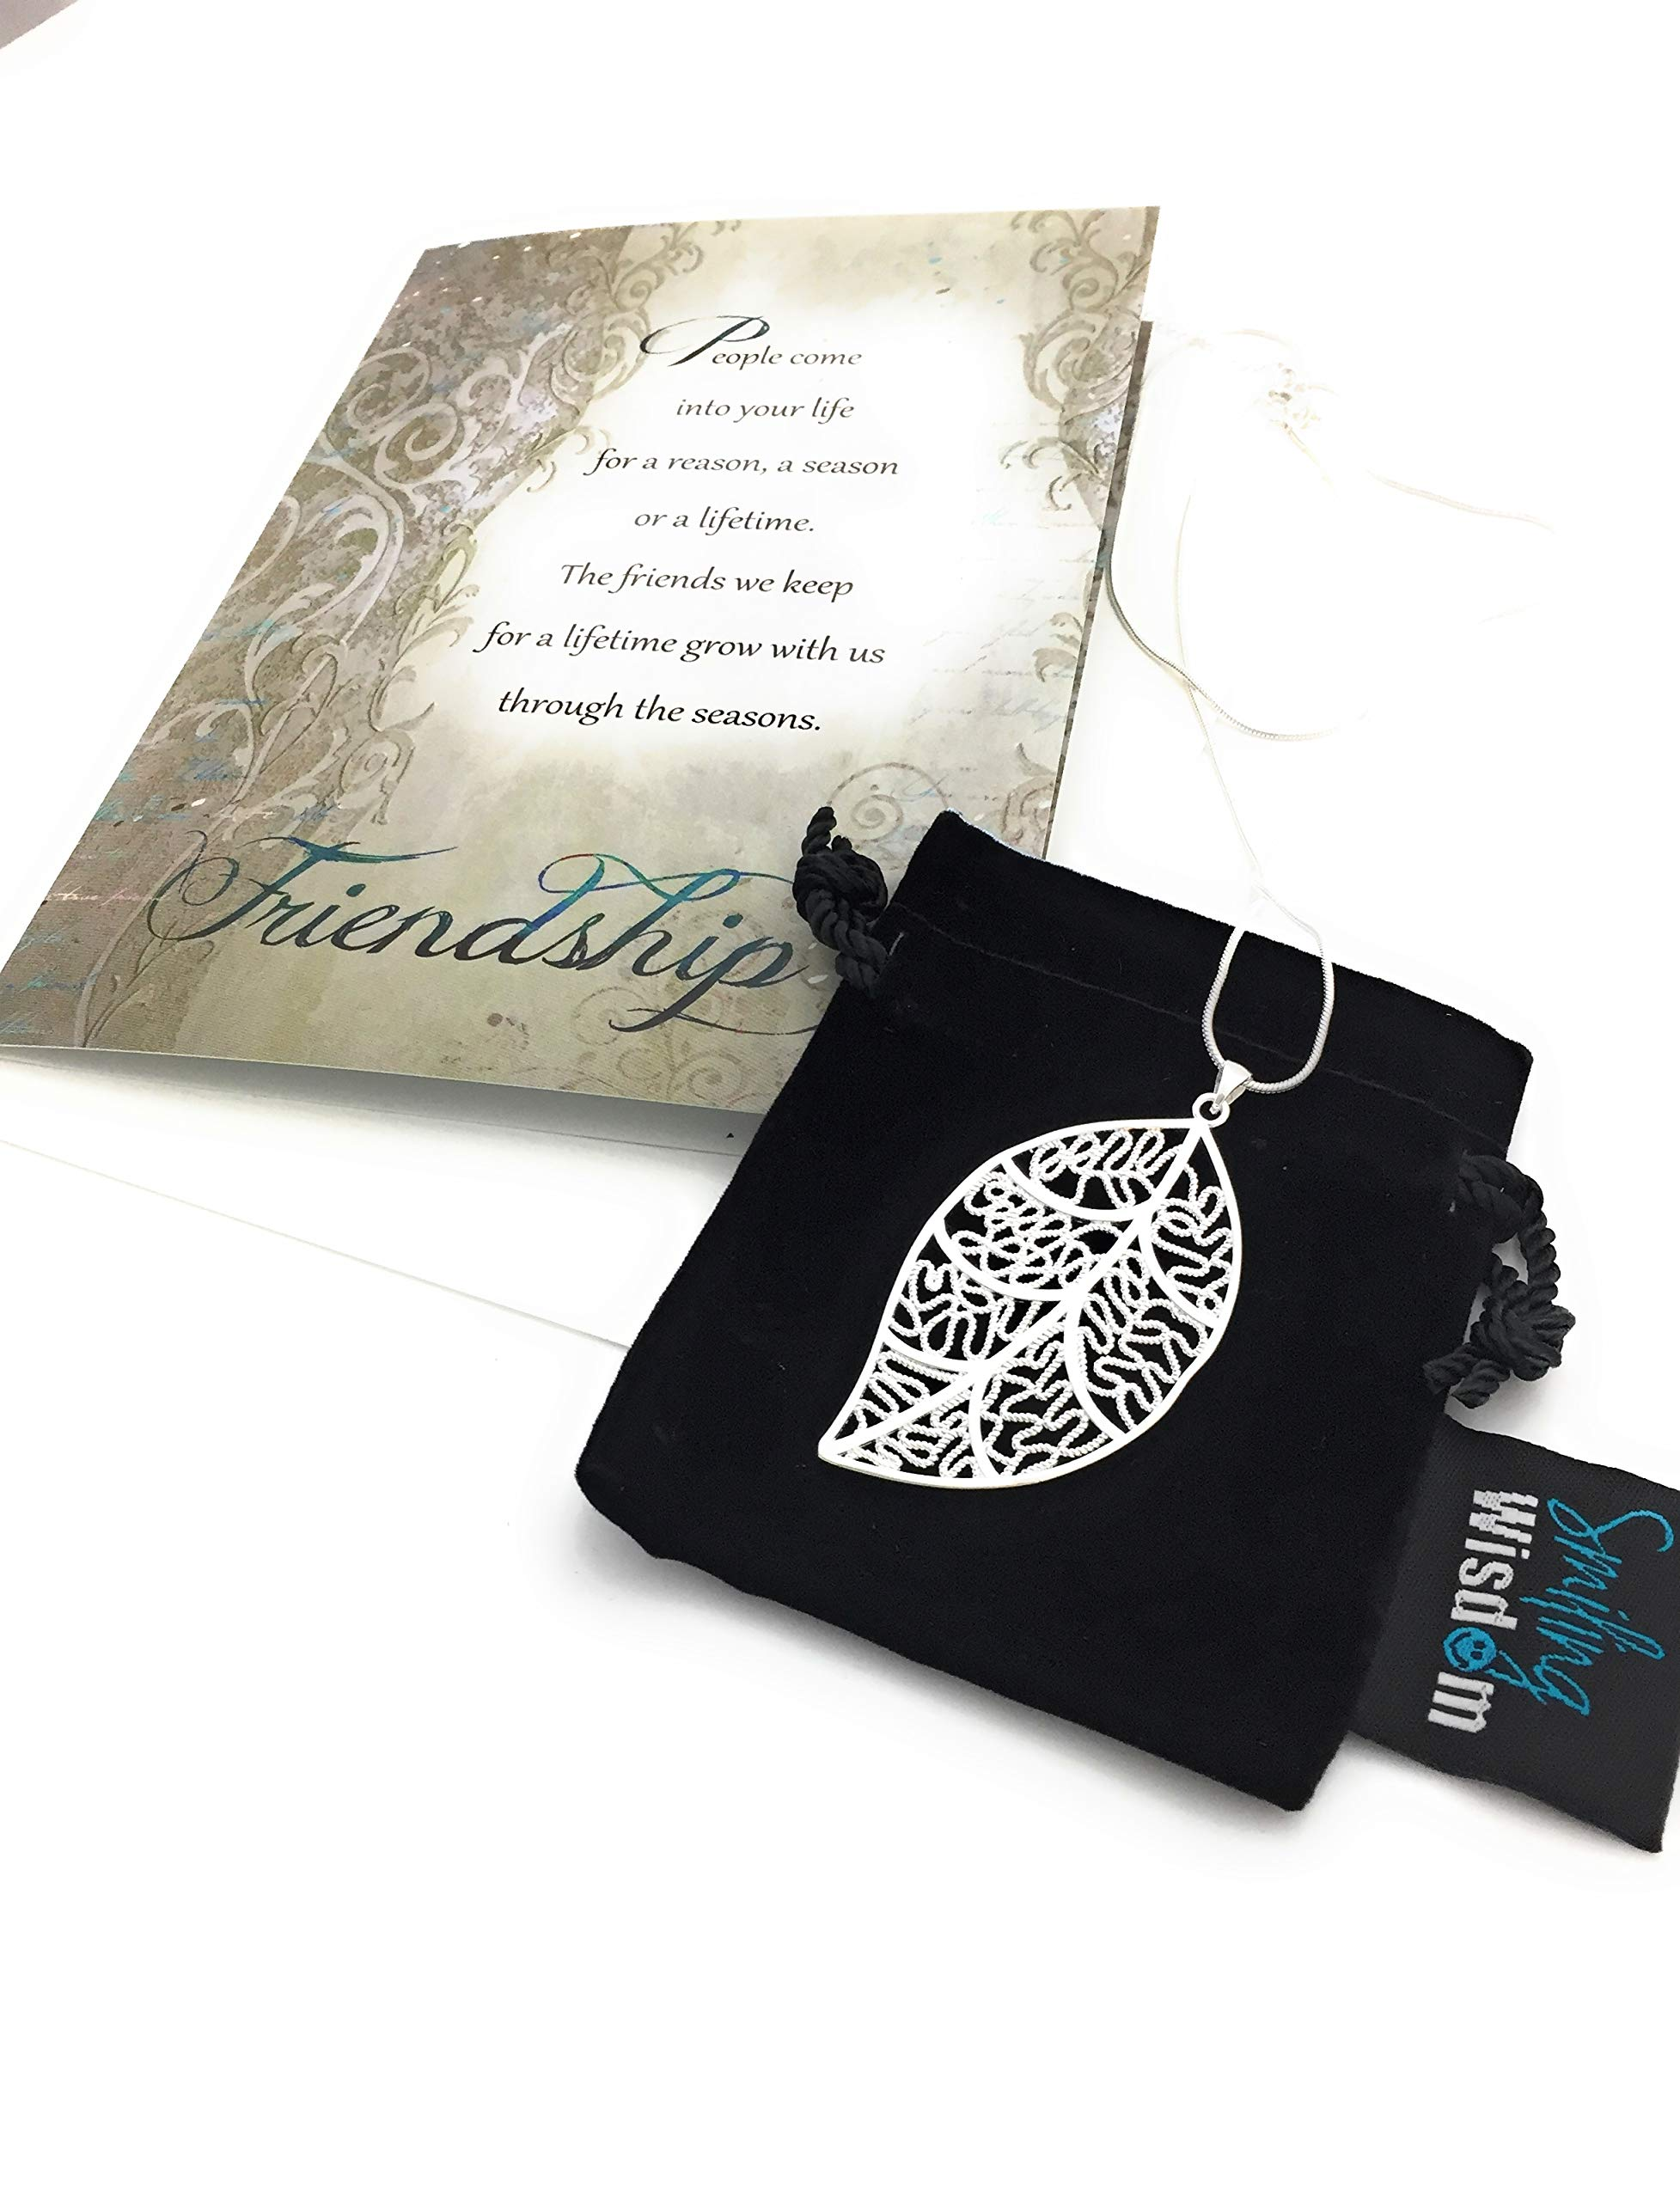 Smiling Wisdom - Silver Leaf Necklace Gift Set - Reason Season Lifetime Special Heartfelt Friendship Message - Velvet Touch Greeting Card - Jewelry Set for Woman BFF Best Friend - .925 Silver Plated by Smiling Wisdom